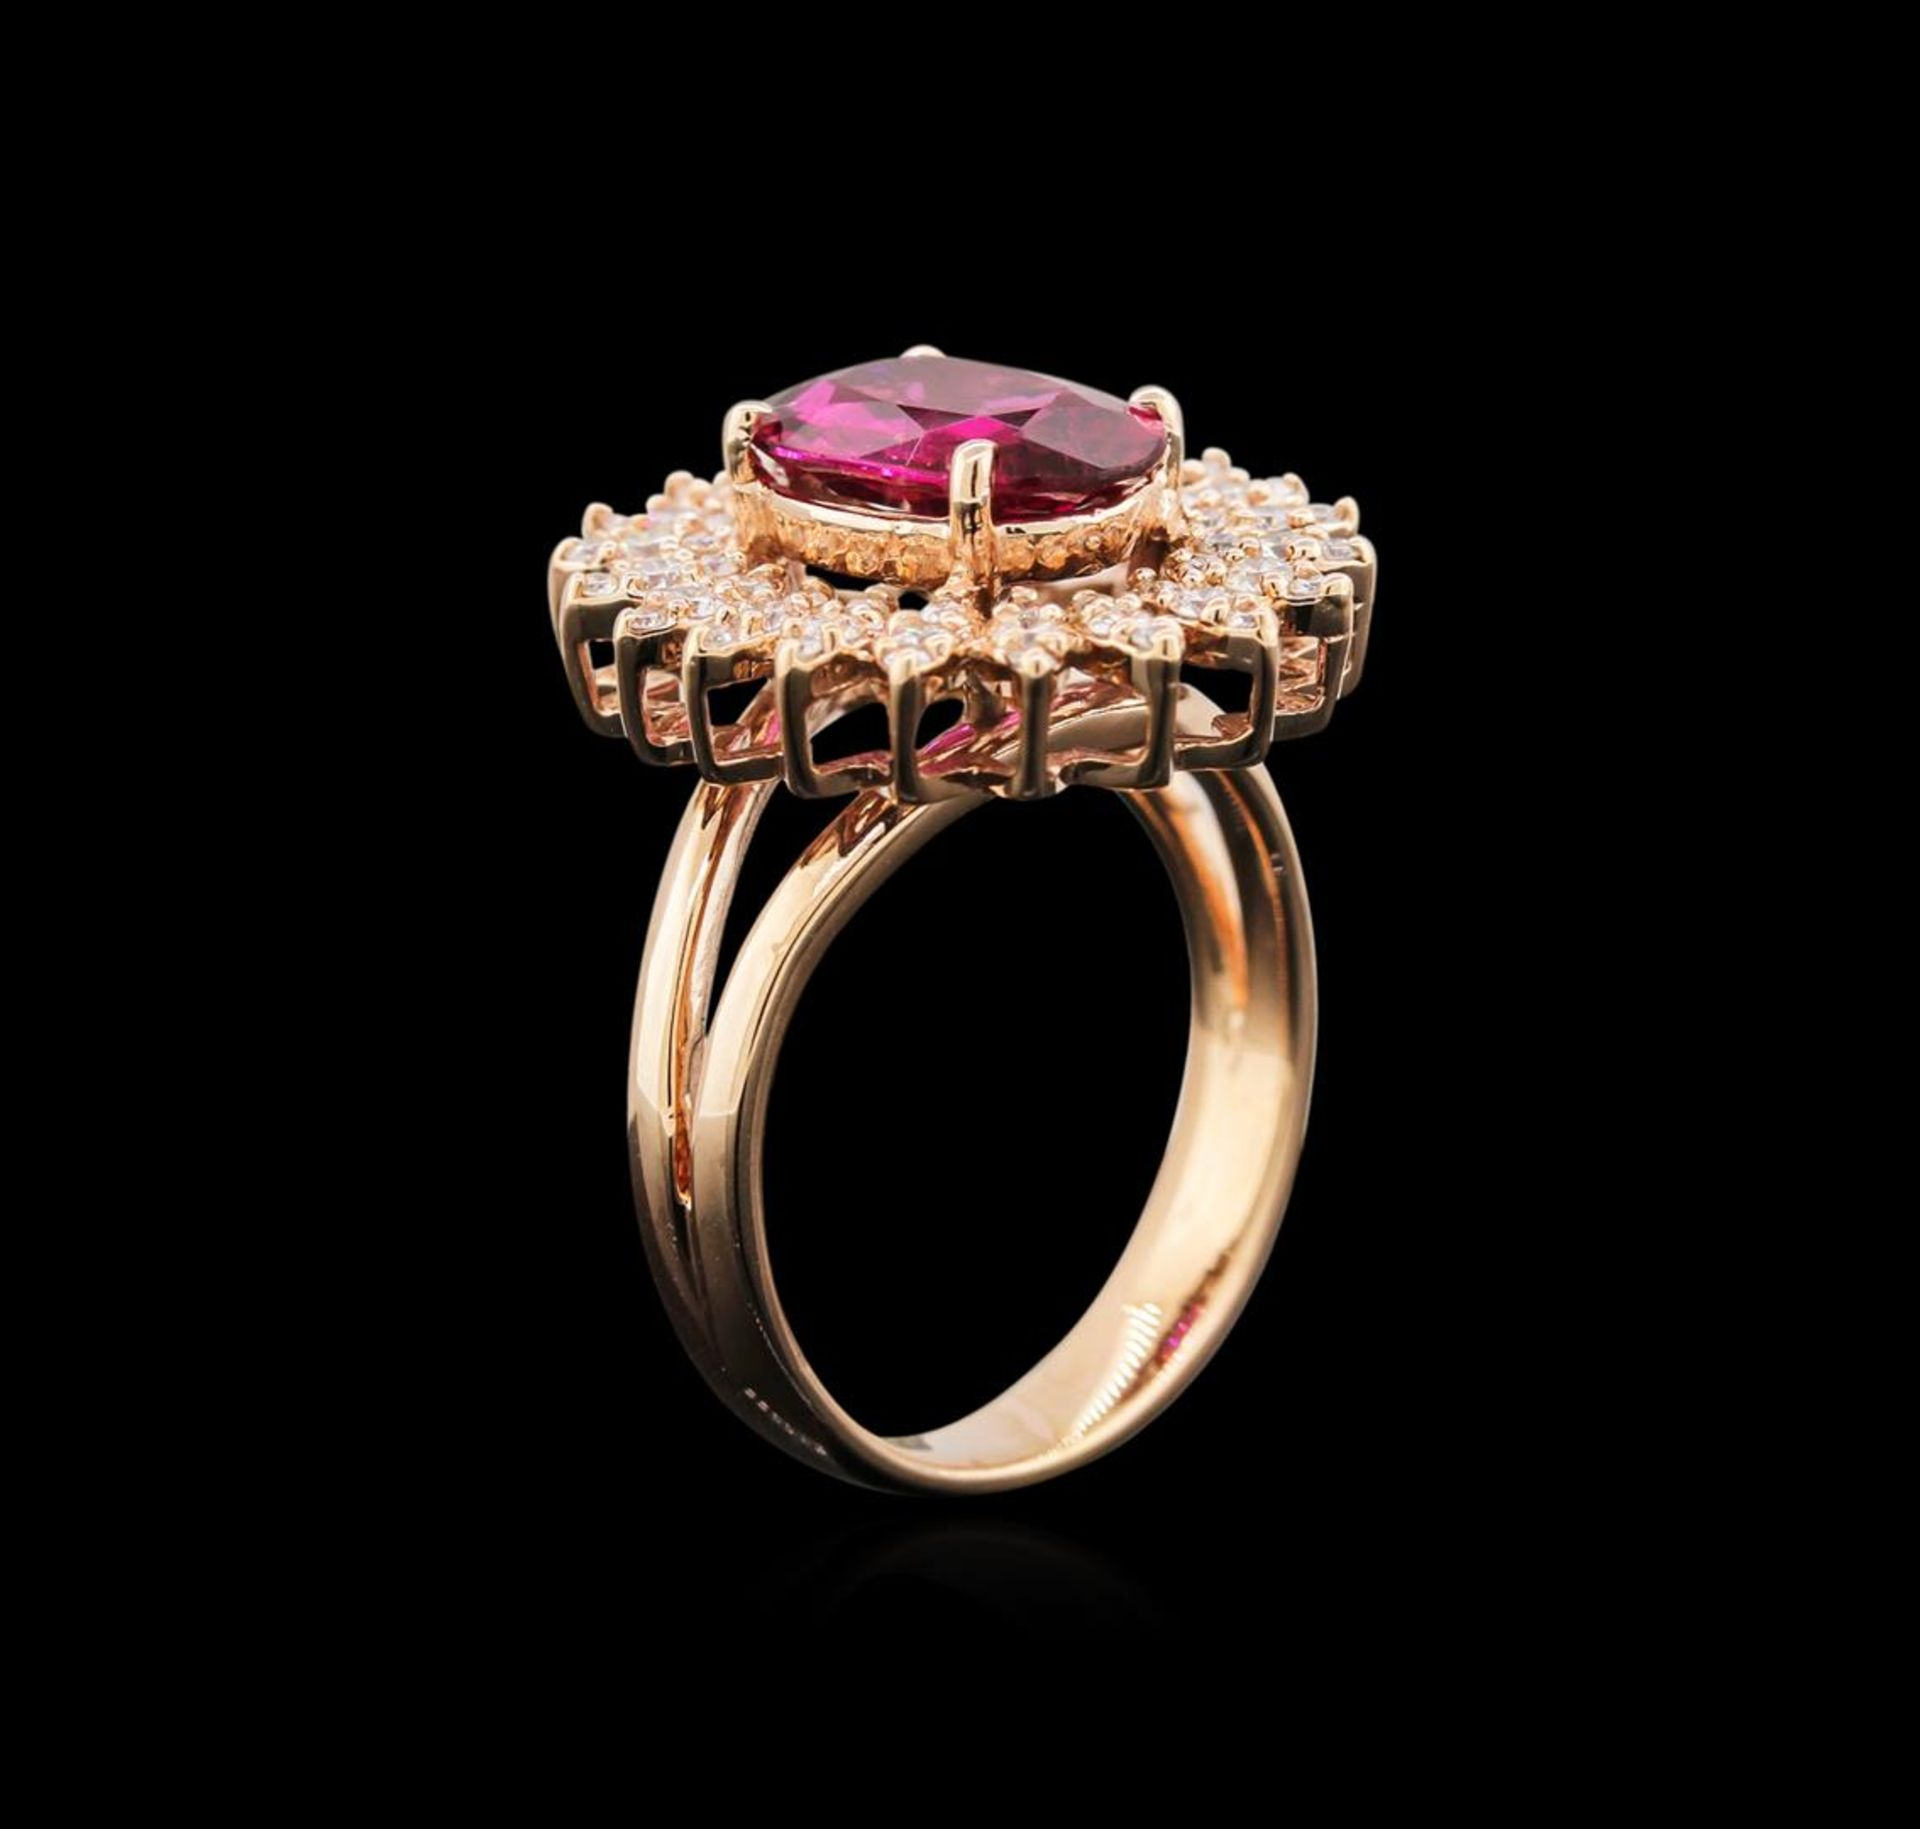 1.99 ctw Ruby and Diamond Ring - 14KT Rose Gold - Image 3 of 3